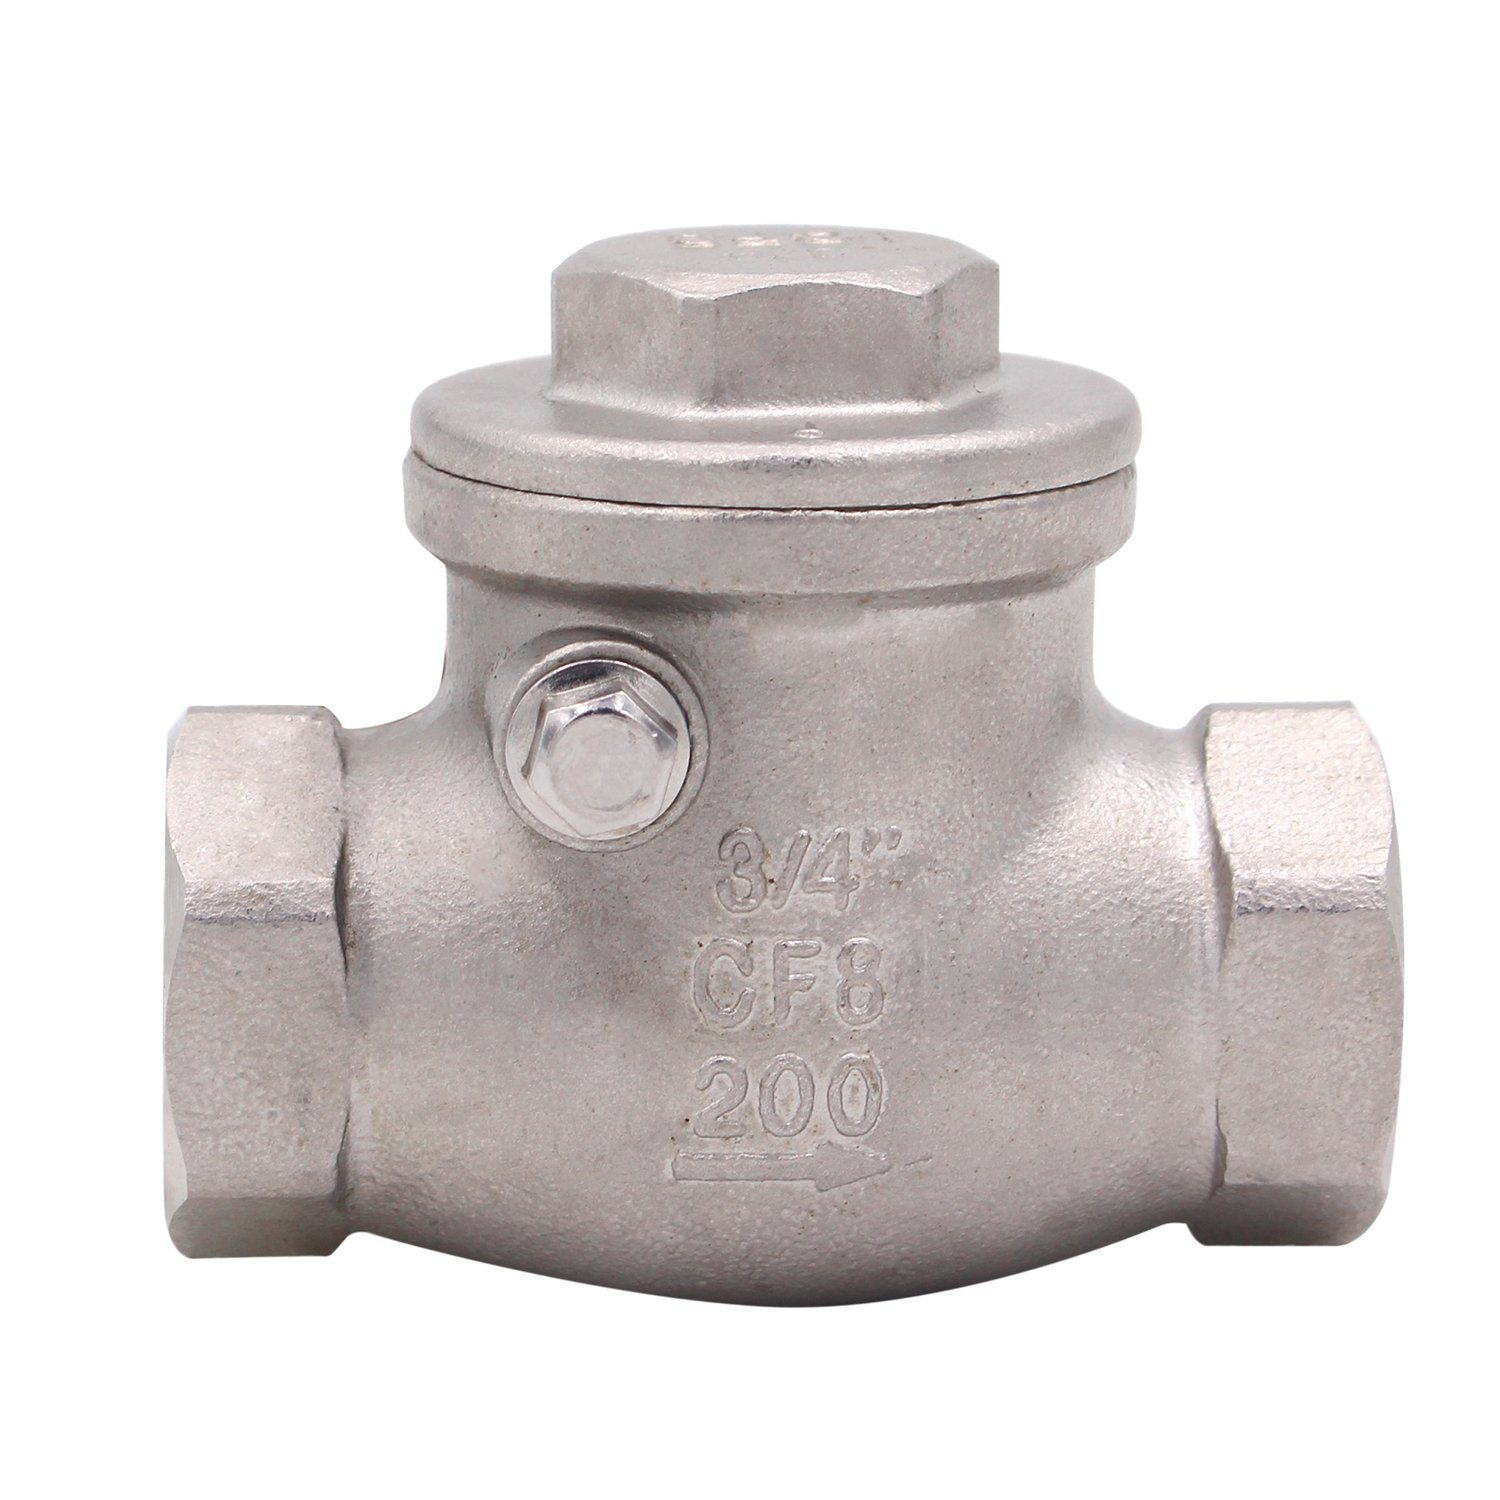 3/4 Inch Swing Check Valve - WOG 200 PSI Stainless Steel SS316 CF8M NPT